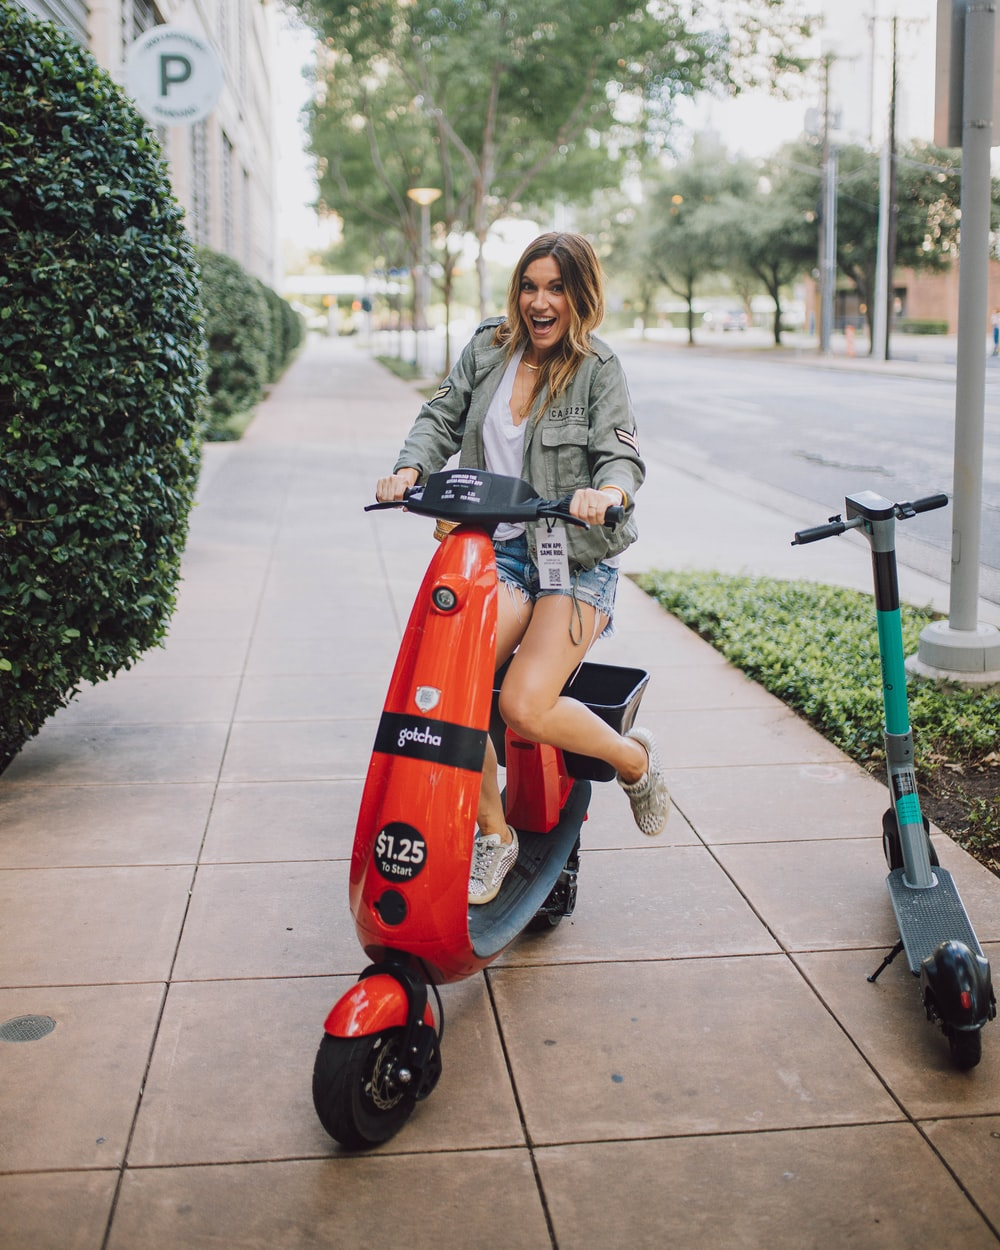 woman in gray jacket riding red and black motor scooter